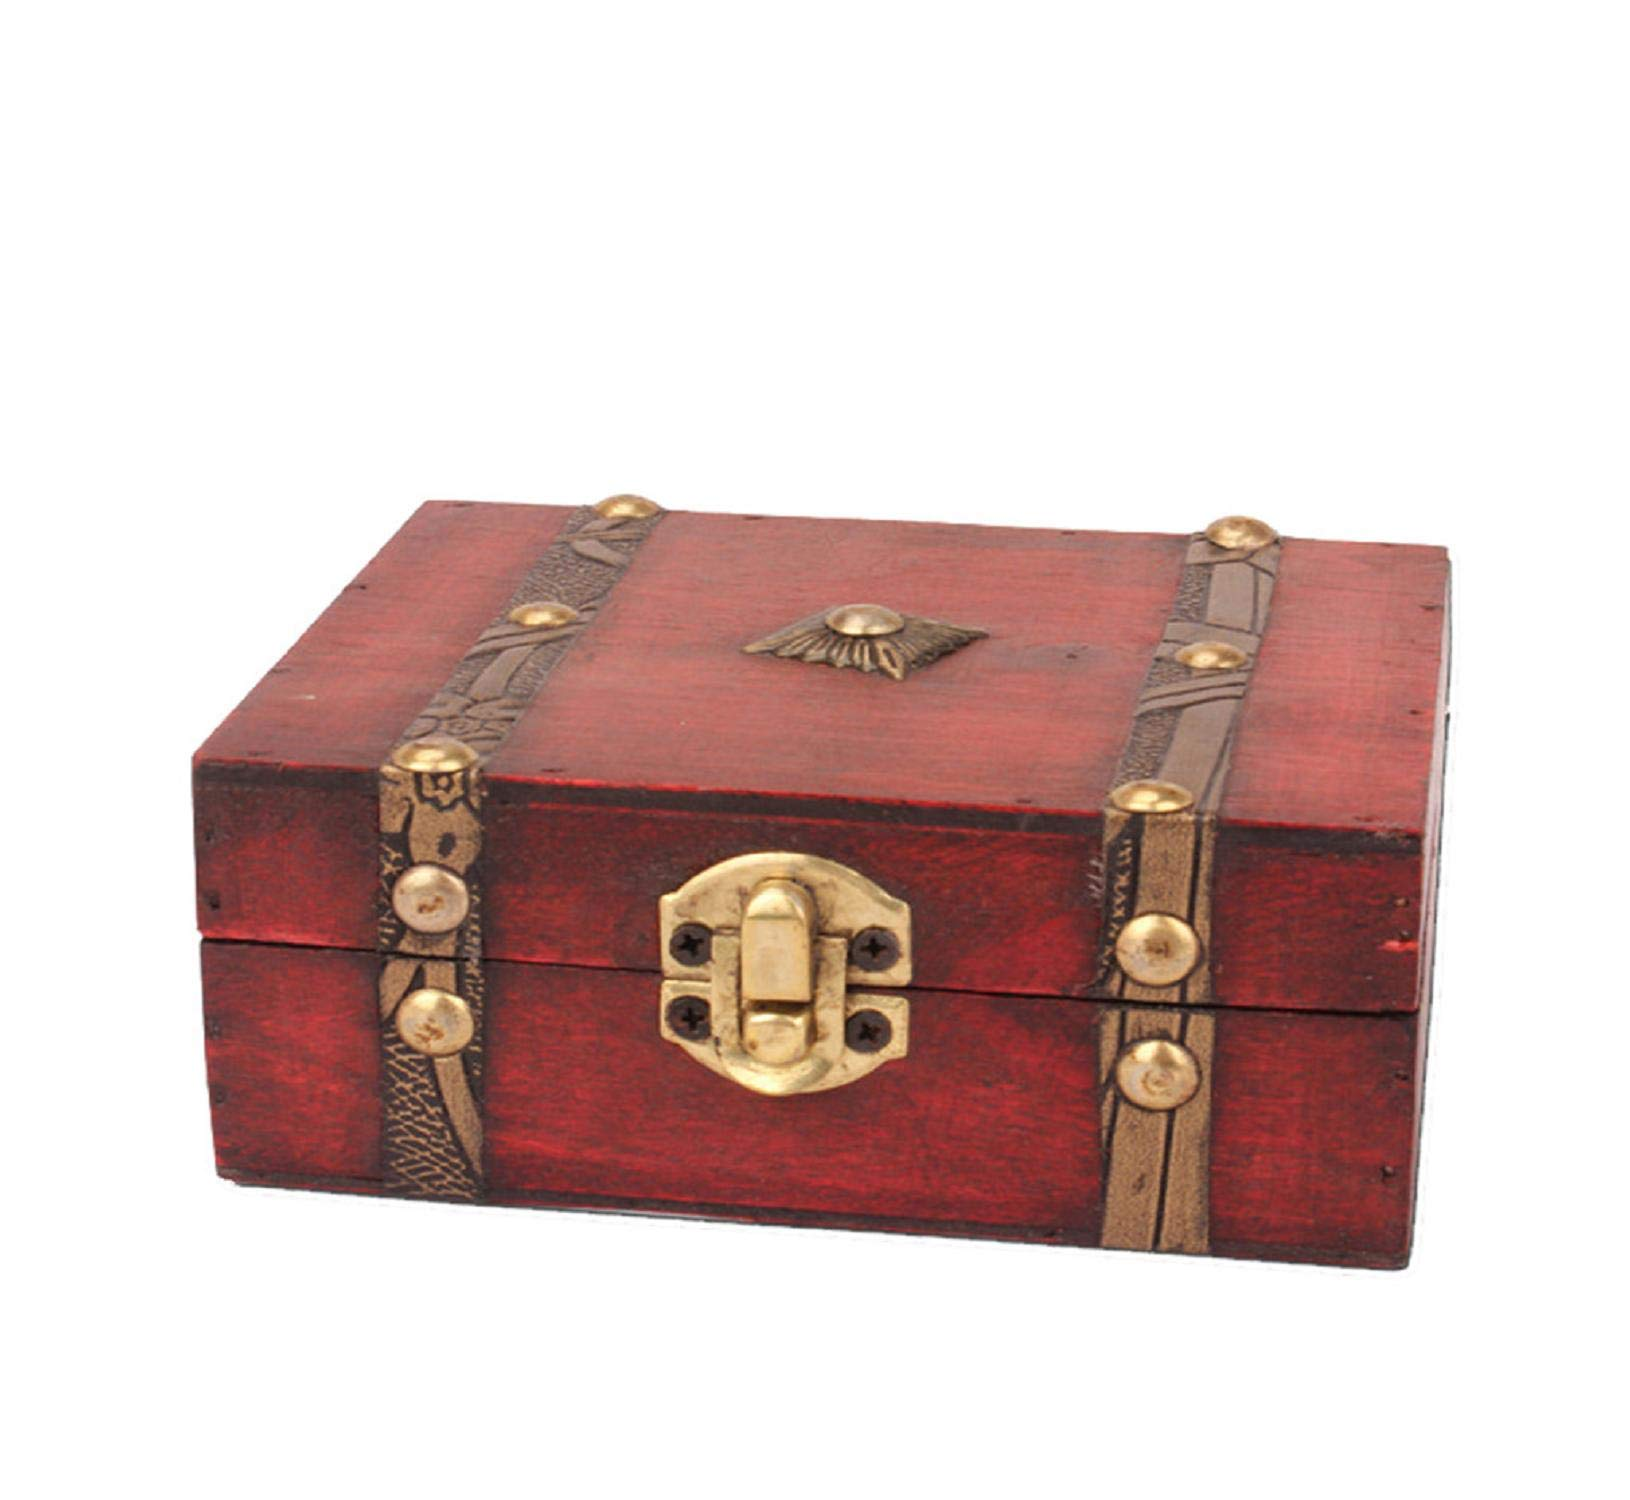 Vertily Jewelry Storage,Jewelry Box Vintage Wood Handmade Box with Mini Metal Lock for Storing Jewelry Treasure Pearl Home Decoration